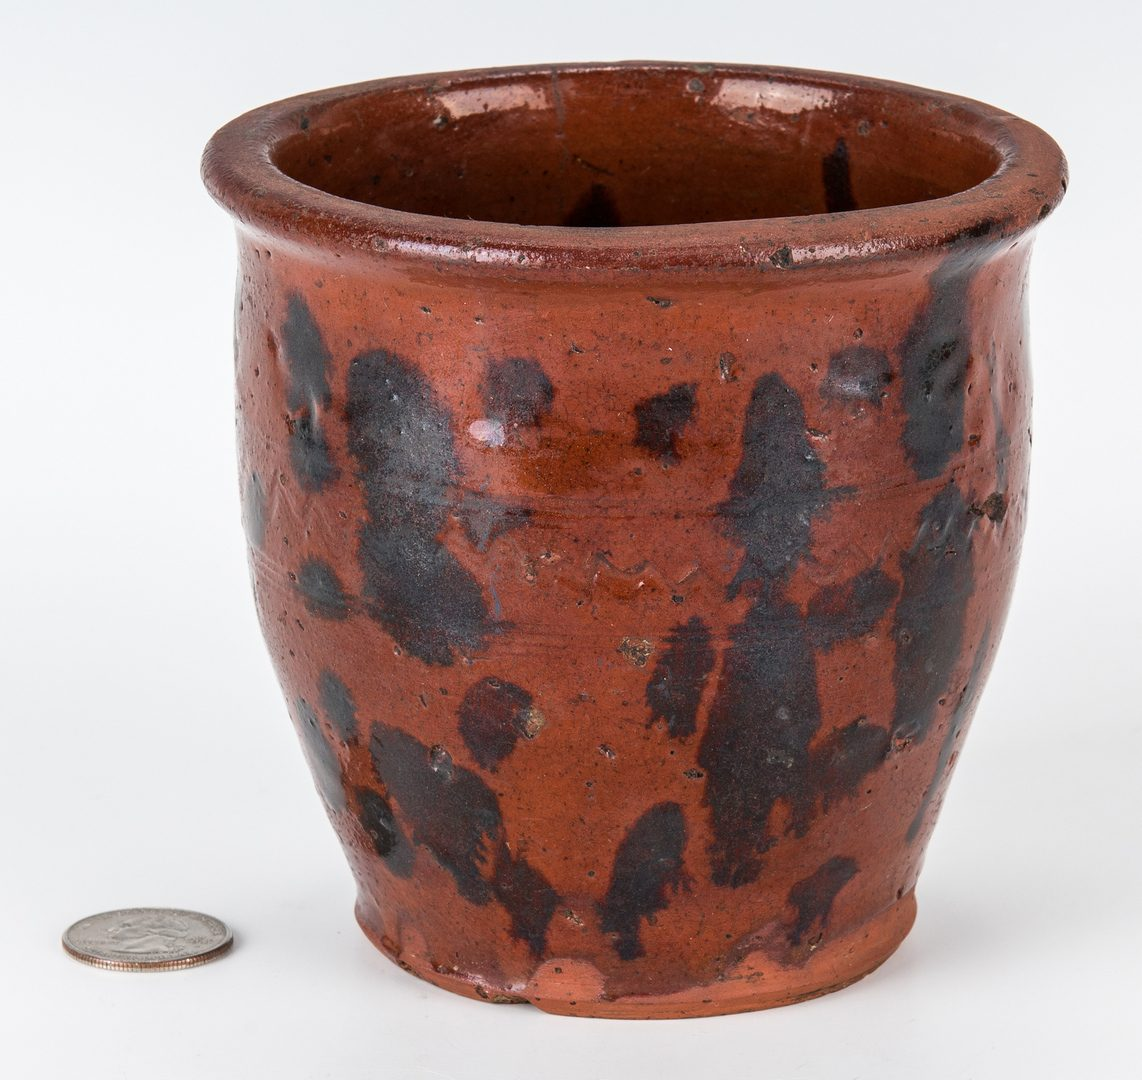 Lot 152: East TN Earthenware Cream Pot, Manganese Decorated, Exhibited